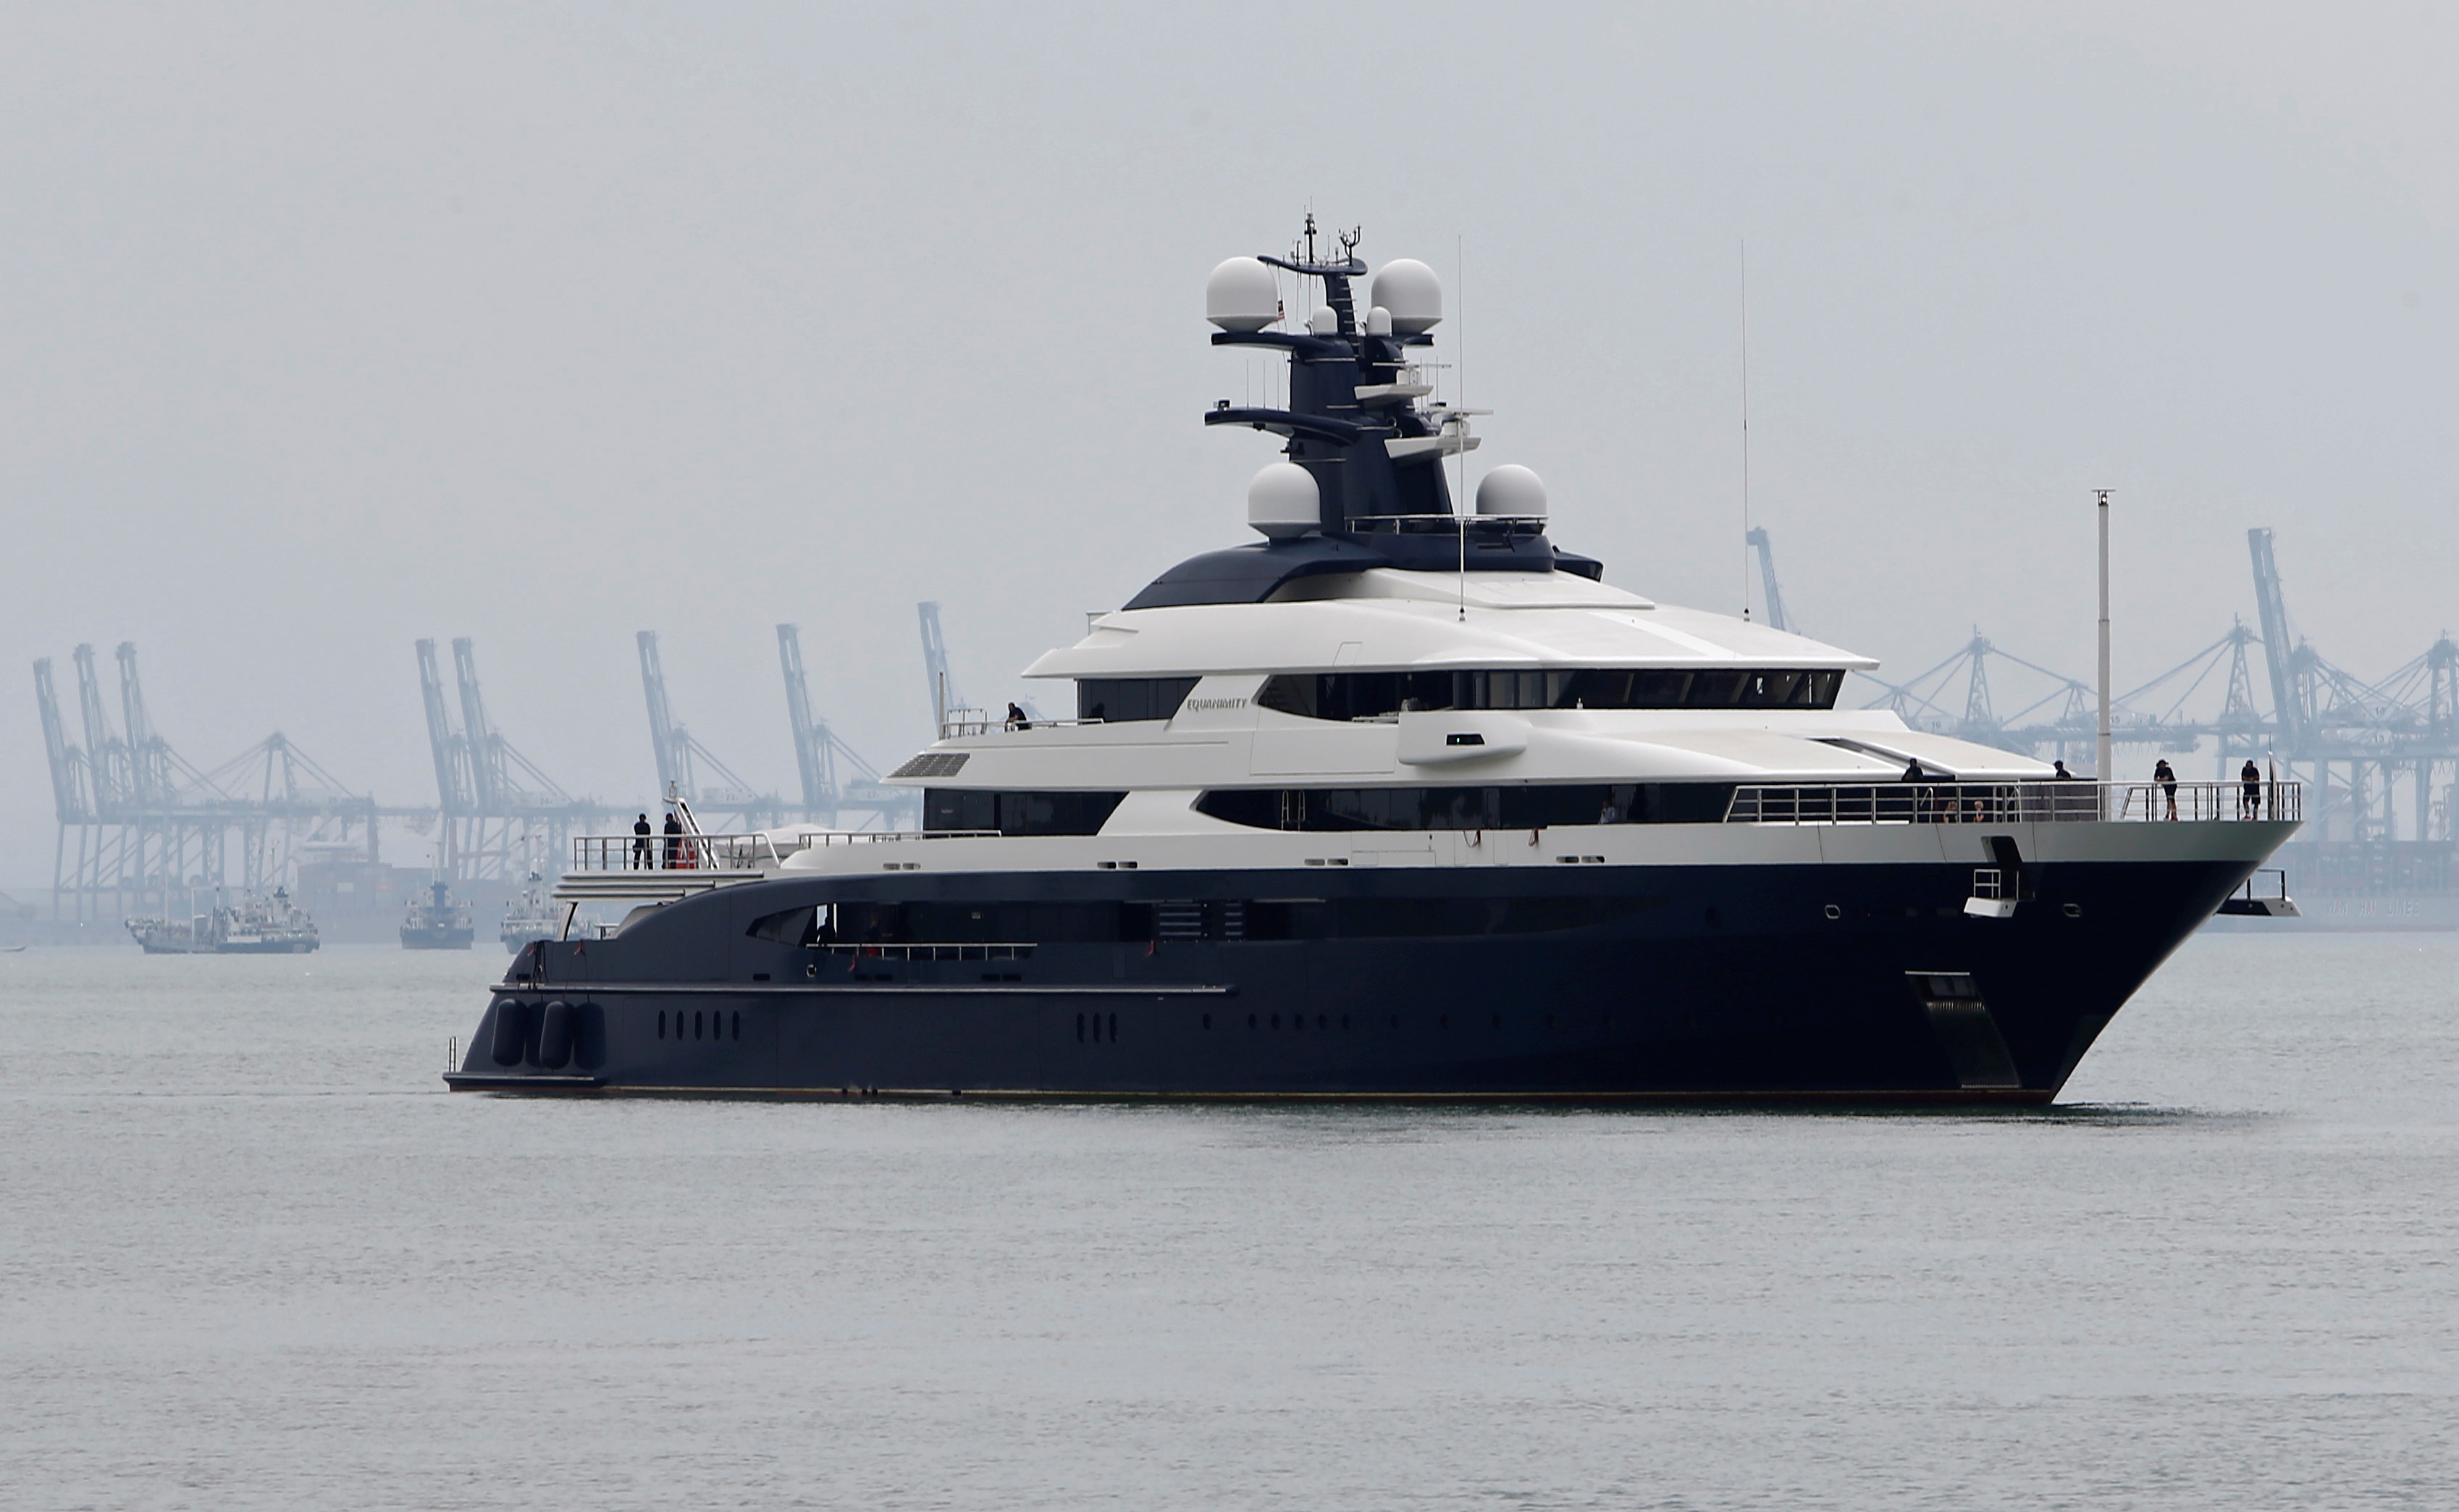 Seized luxury yacht Equanimity, belonging to fugitive Malaysian financier Low Taek Jho, is brought to Boustead Cruise Terminal in Port Klang, Malaysia August 7, 2018.